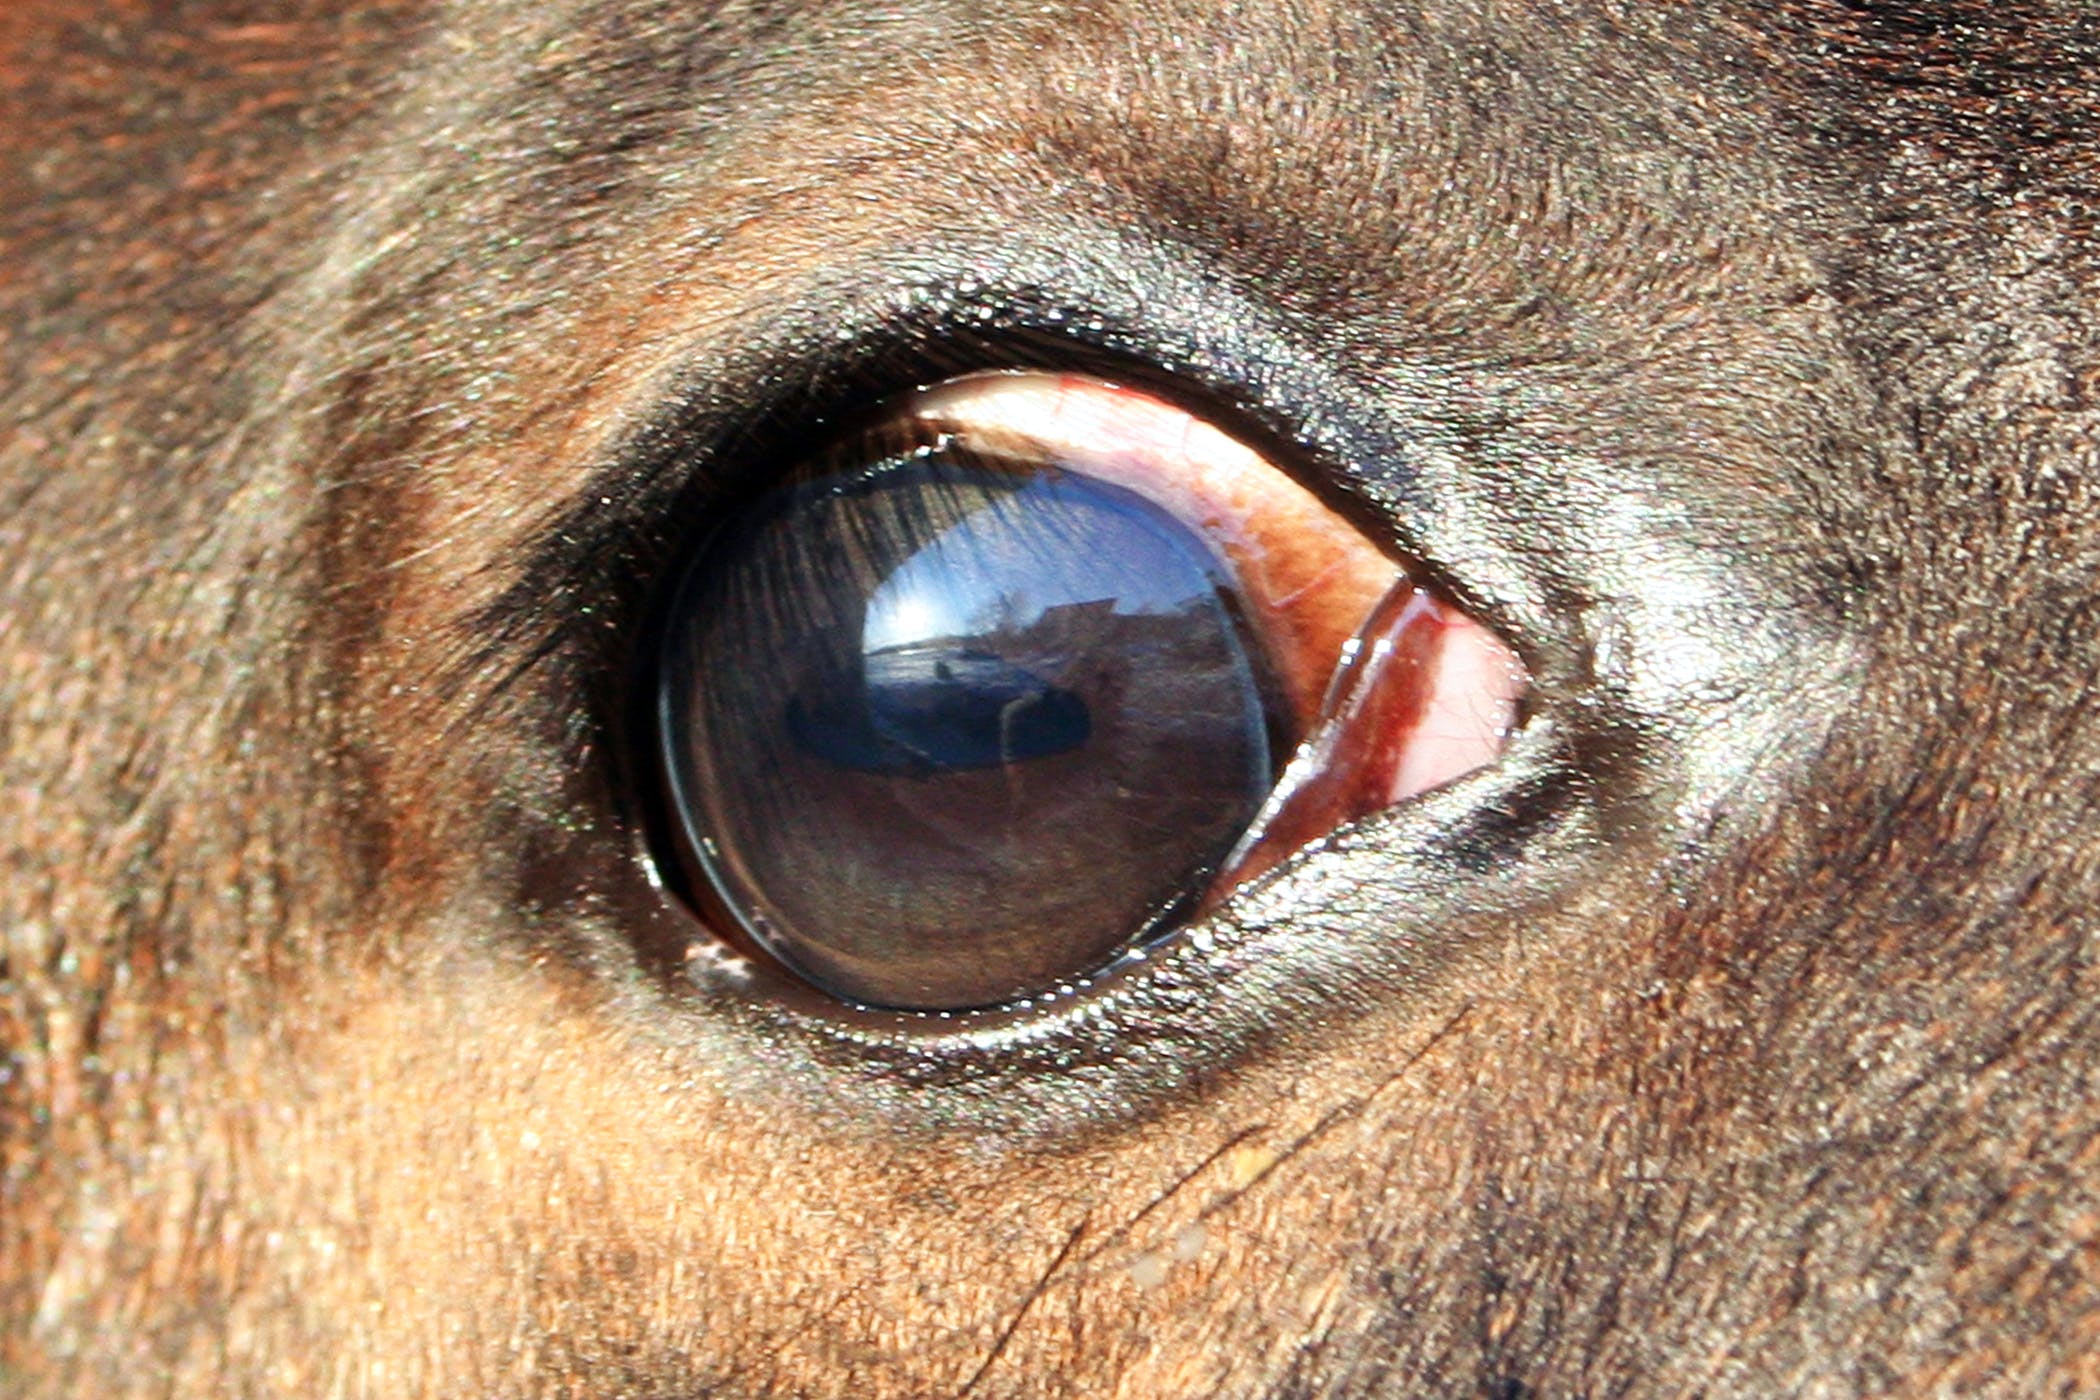 Cancers and Tumors of the Eye in Horses - Symptoms, Causes